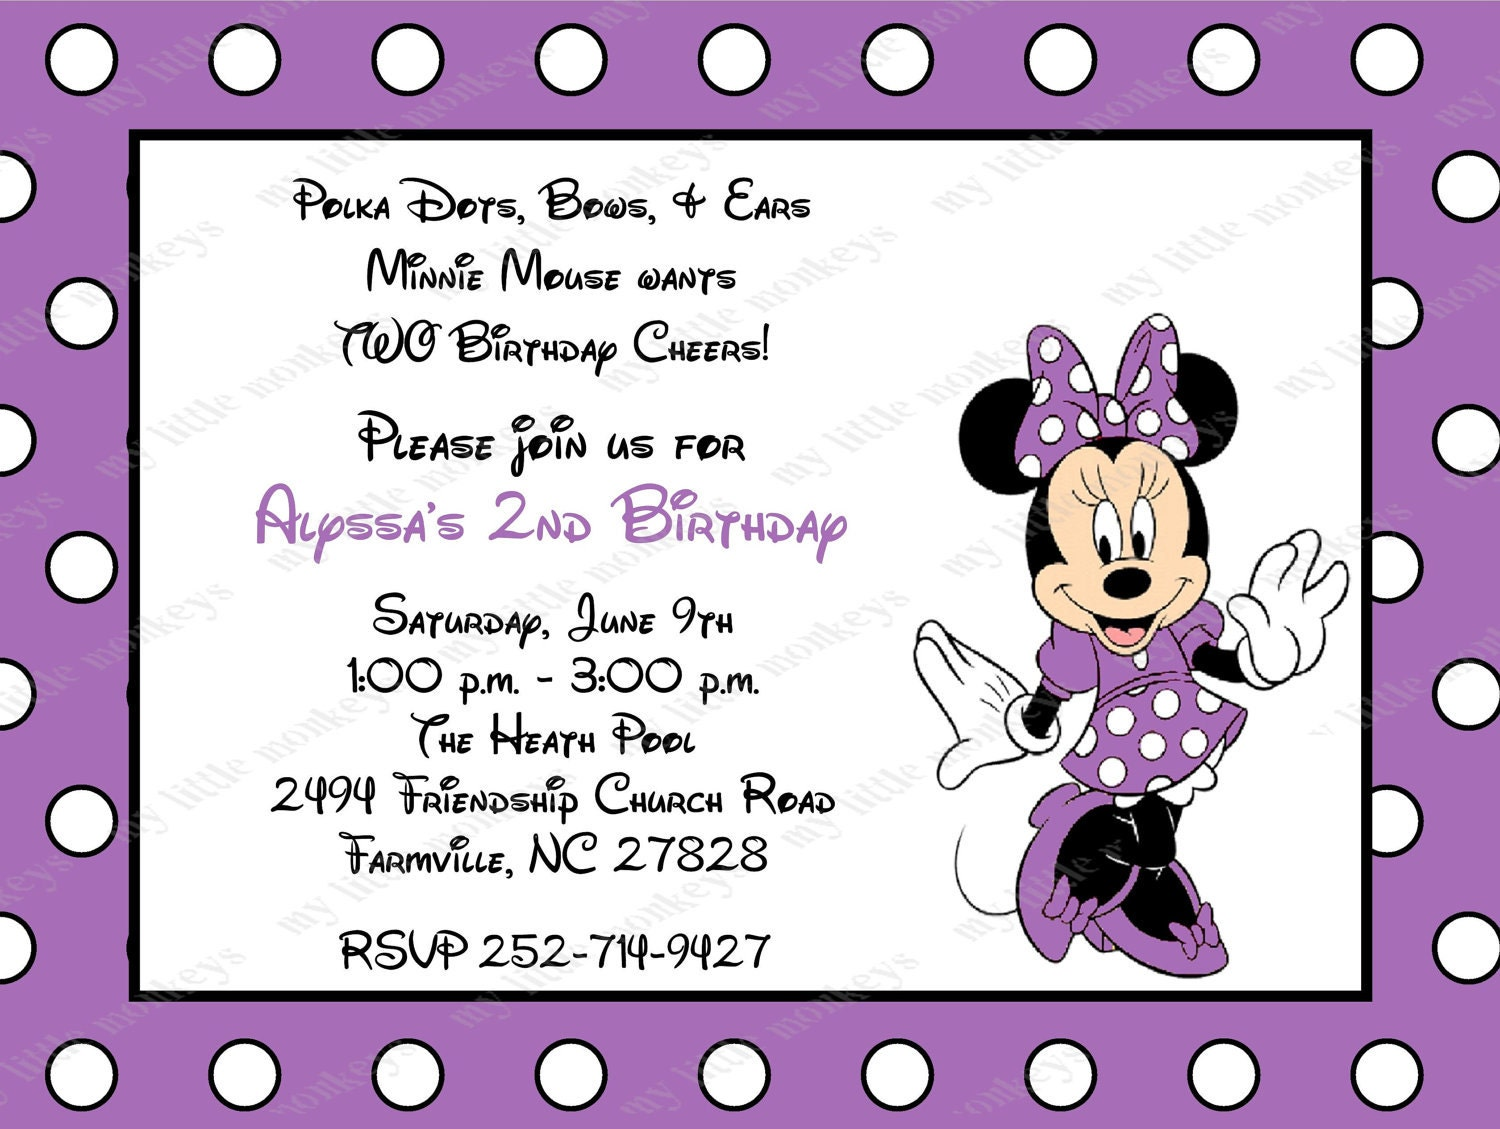 Baby Minnie Mouse Baby Shower Invitations for awesome invitation ideas